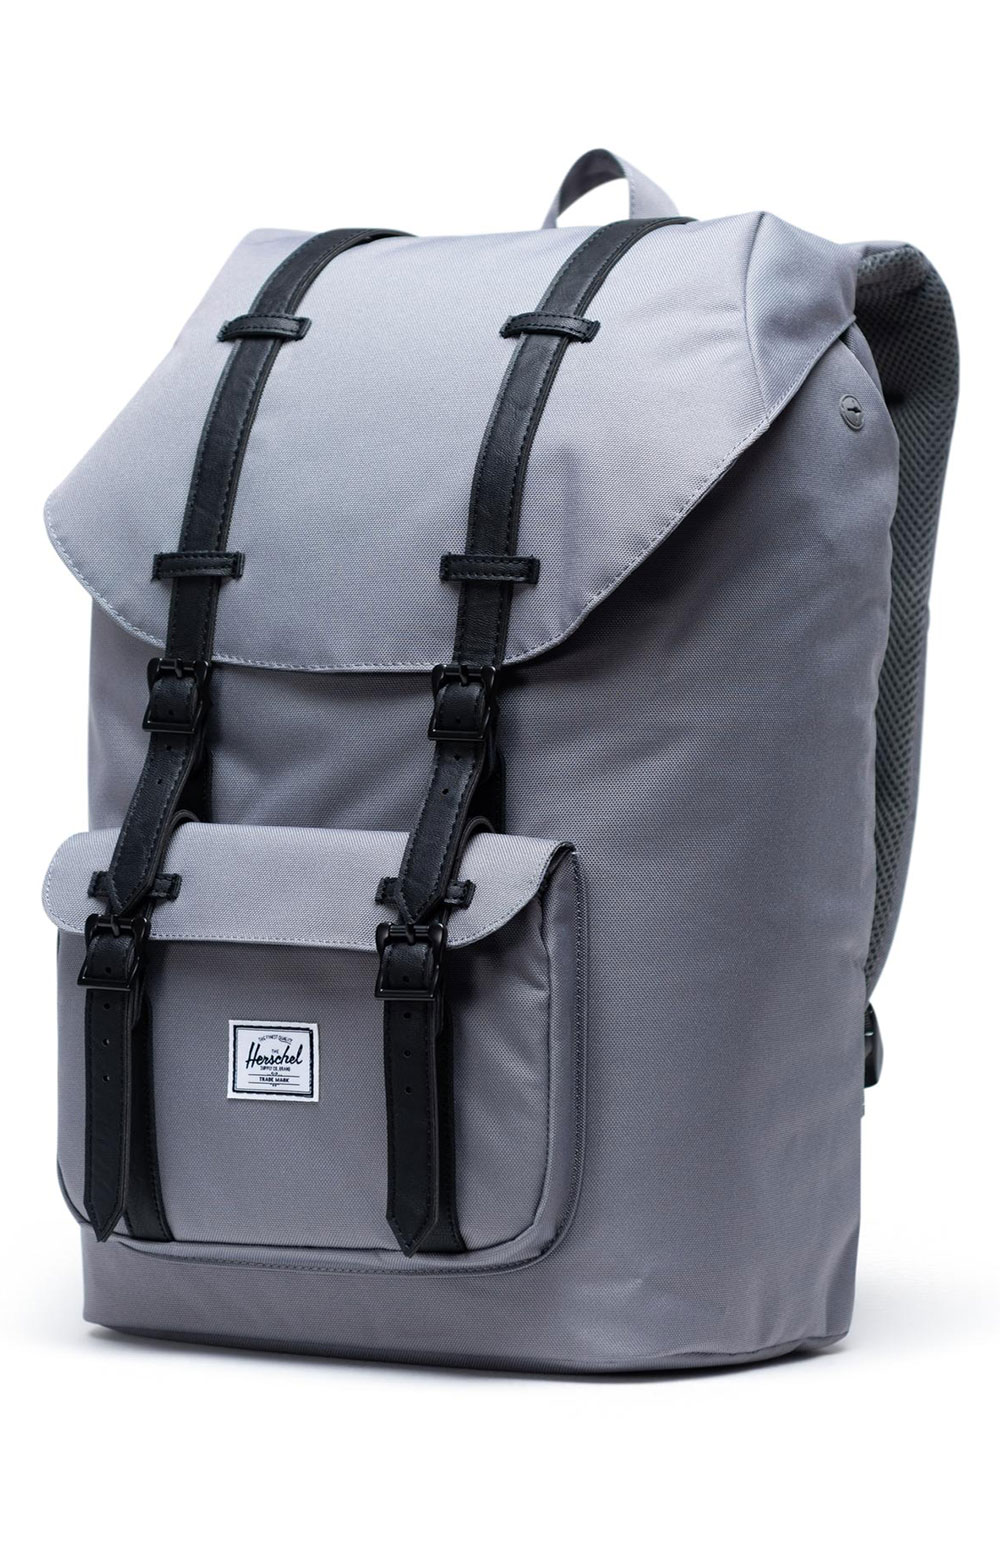 Little America Backpack - Grey/Black 3